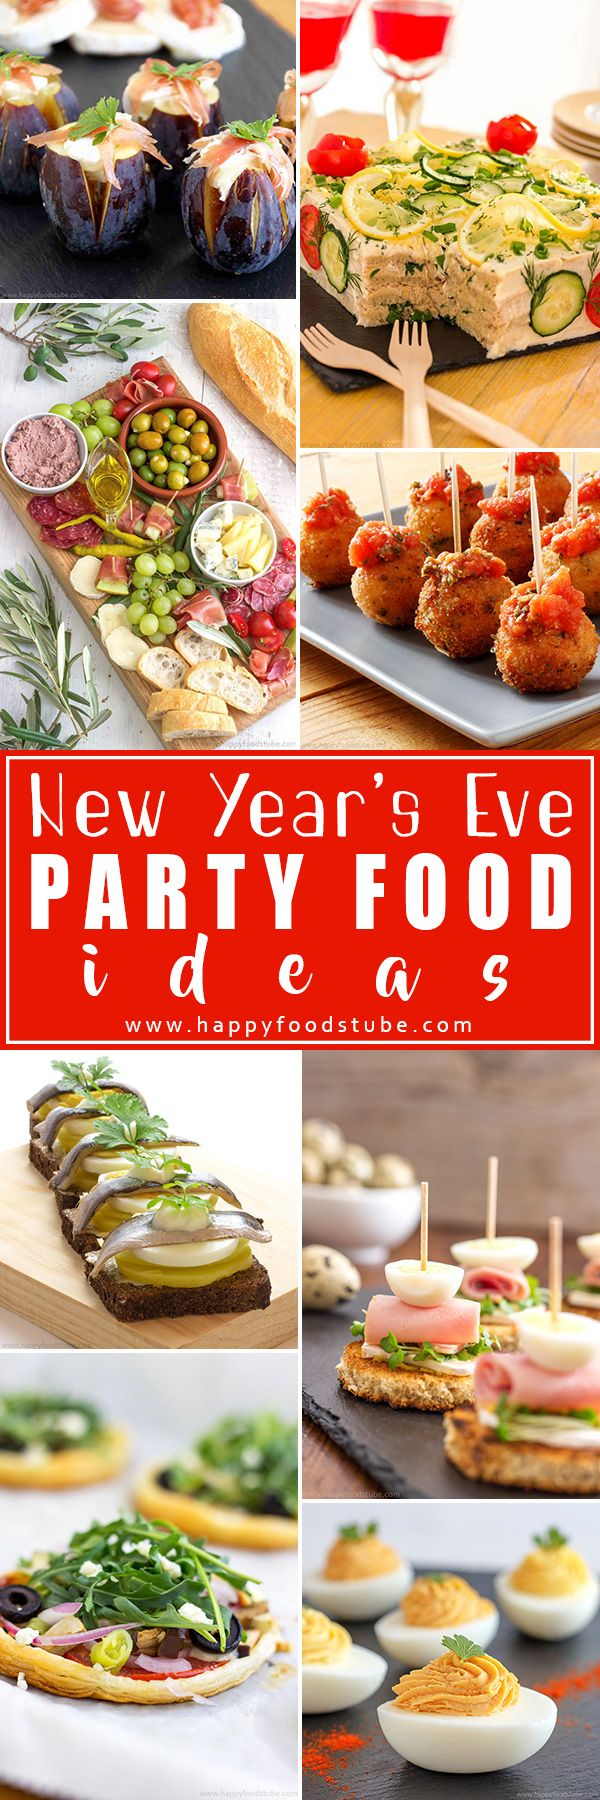 New Years Eve Party Food Ideas - Happy Foods Tube #newyearsevefood